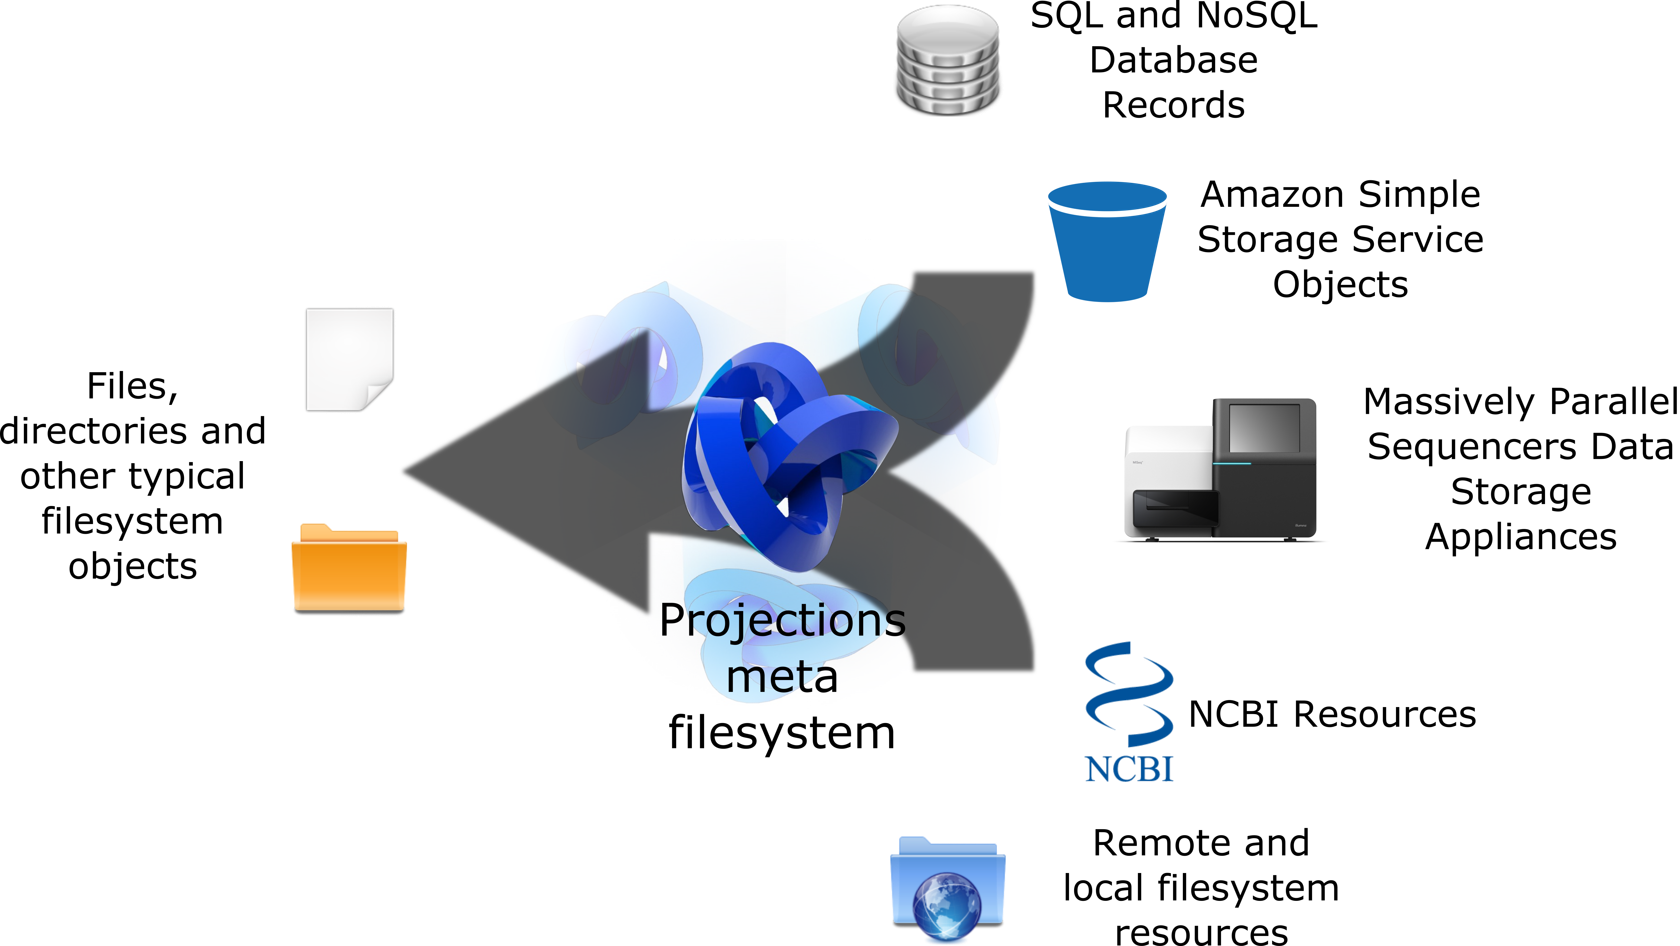 Projections meta filesystem: file access to non-file resources